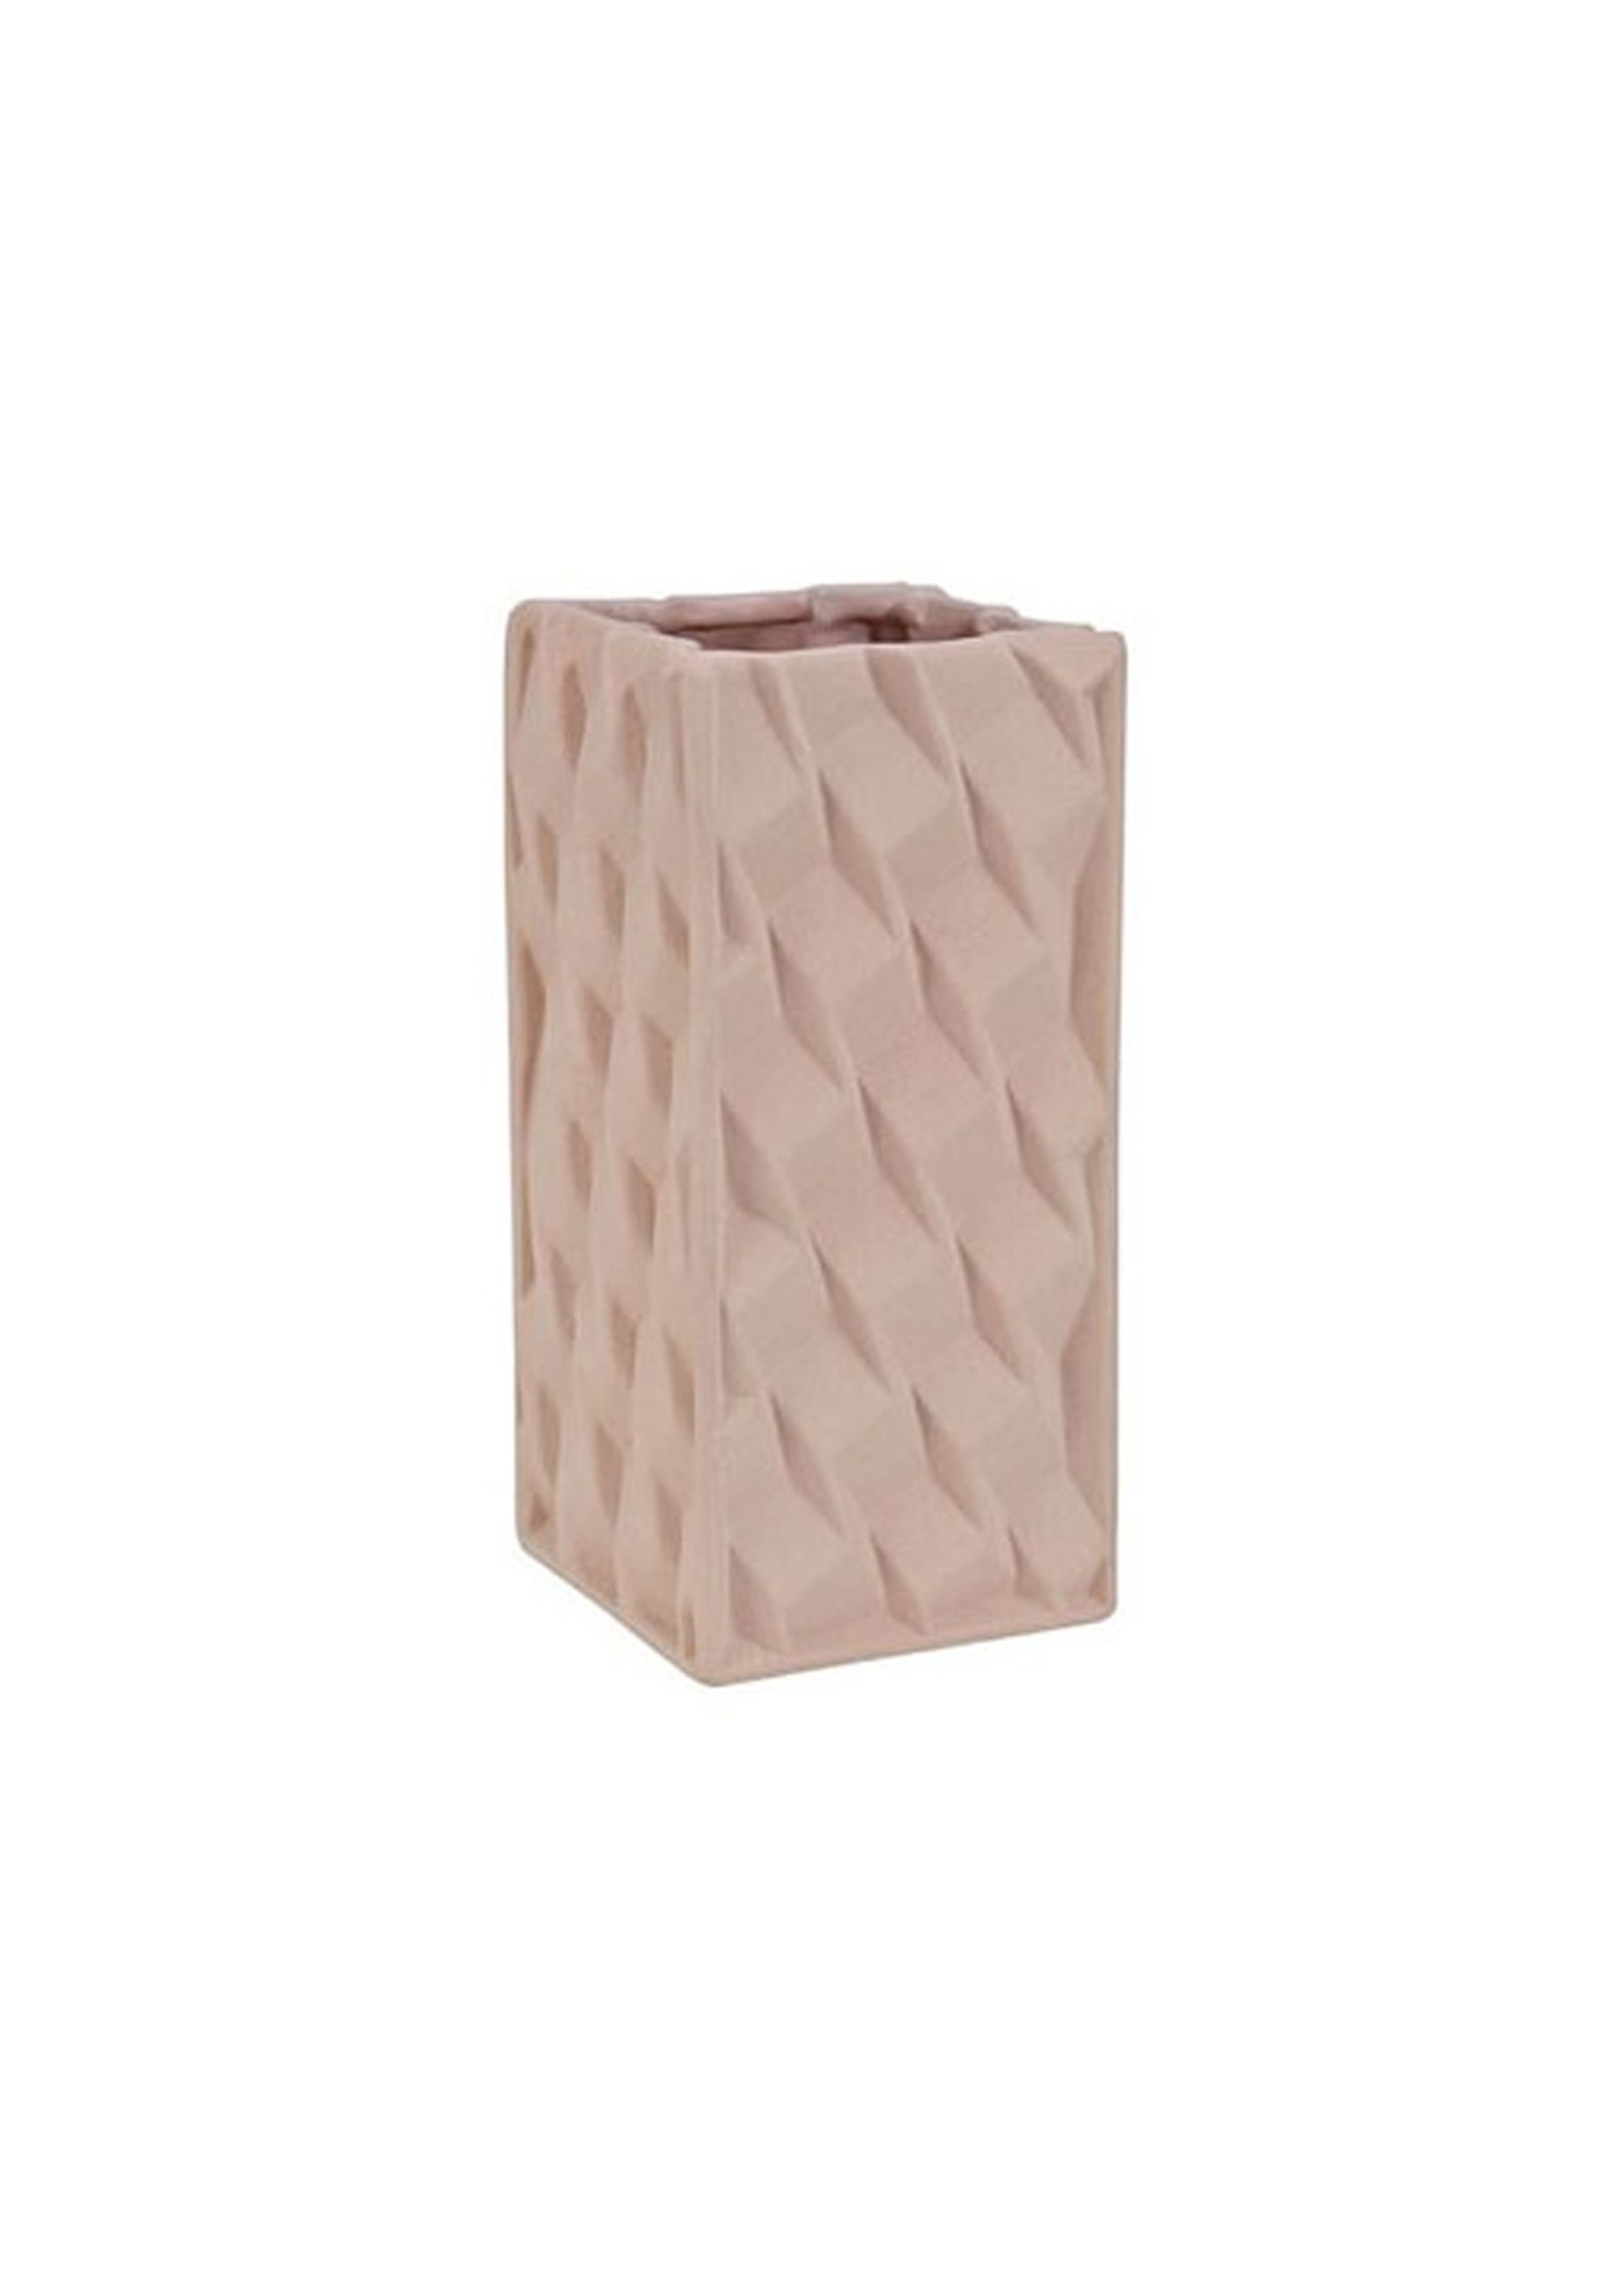 Image of   Grid Vase - Small